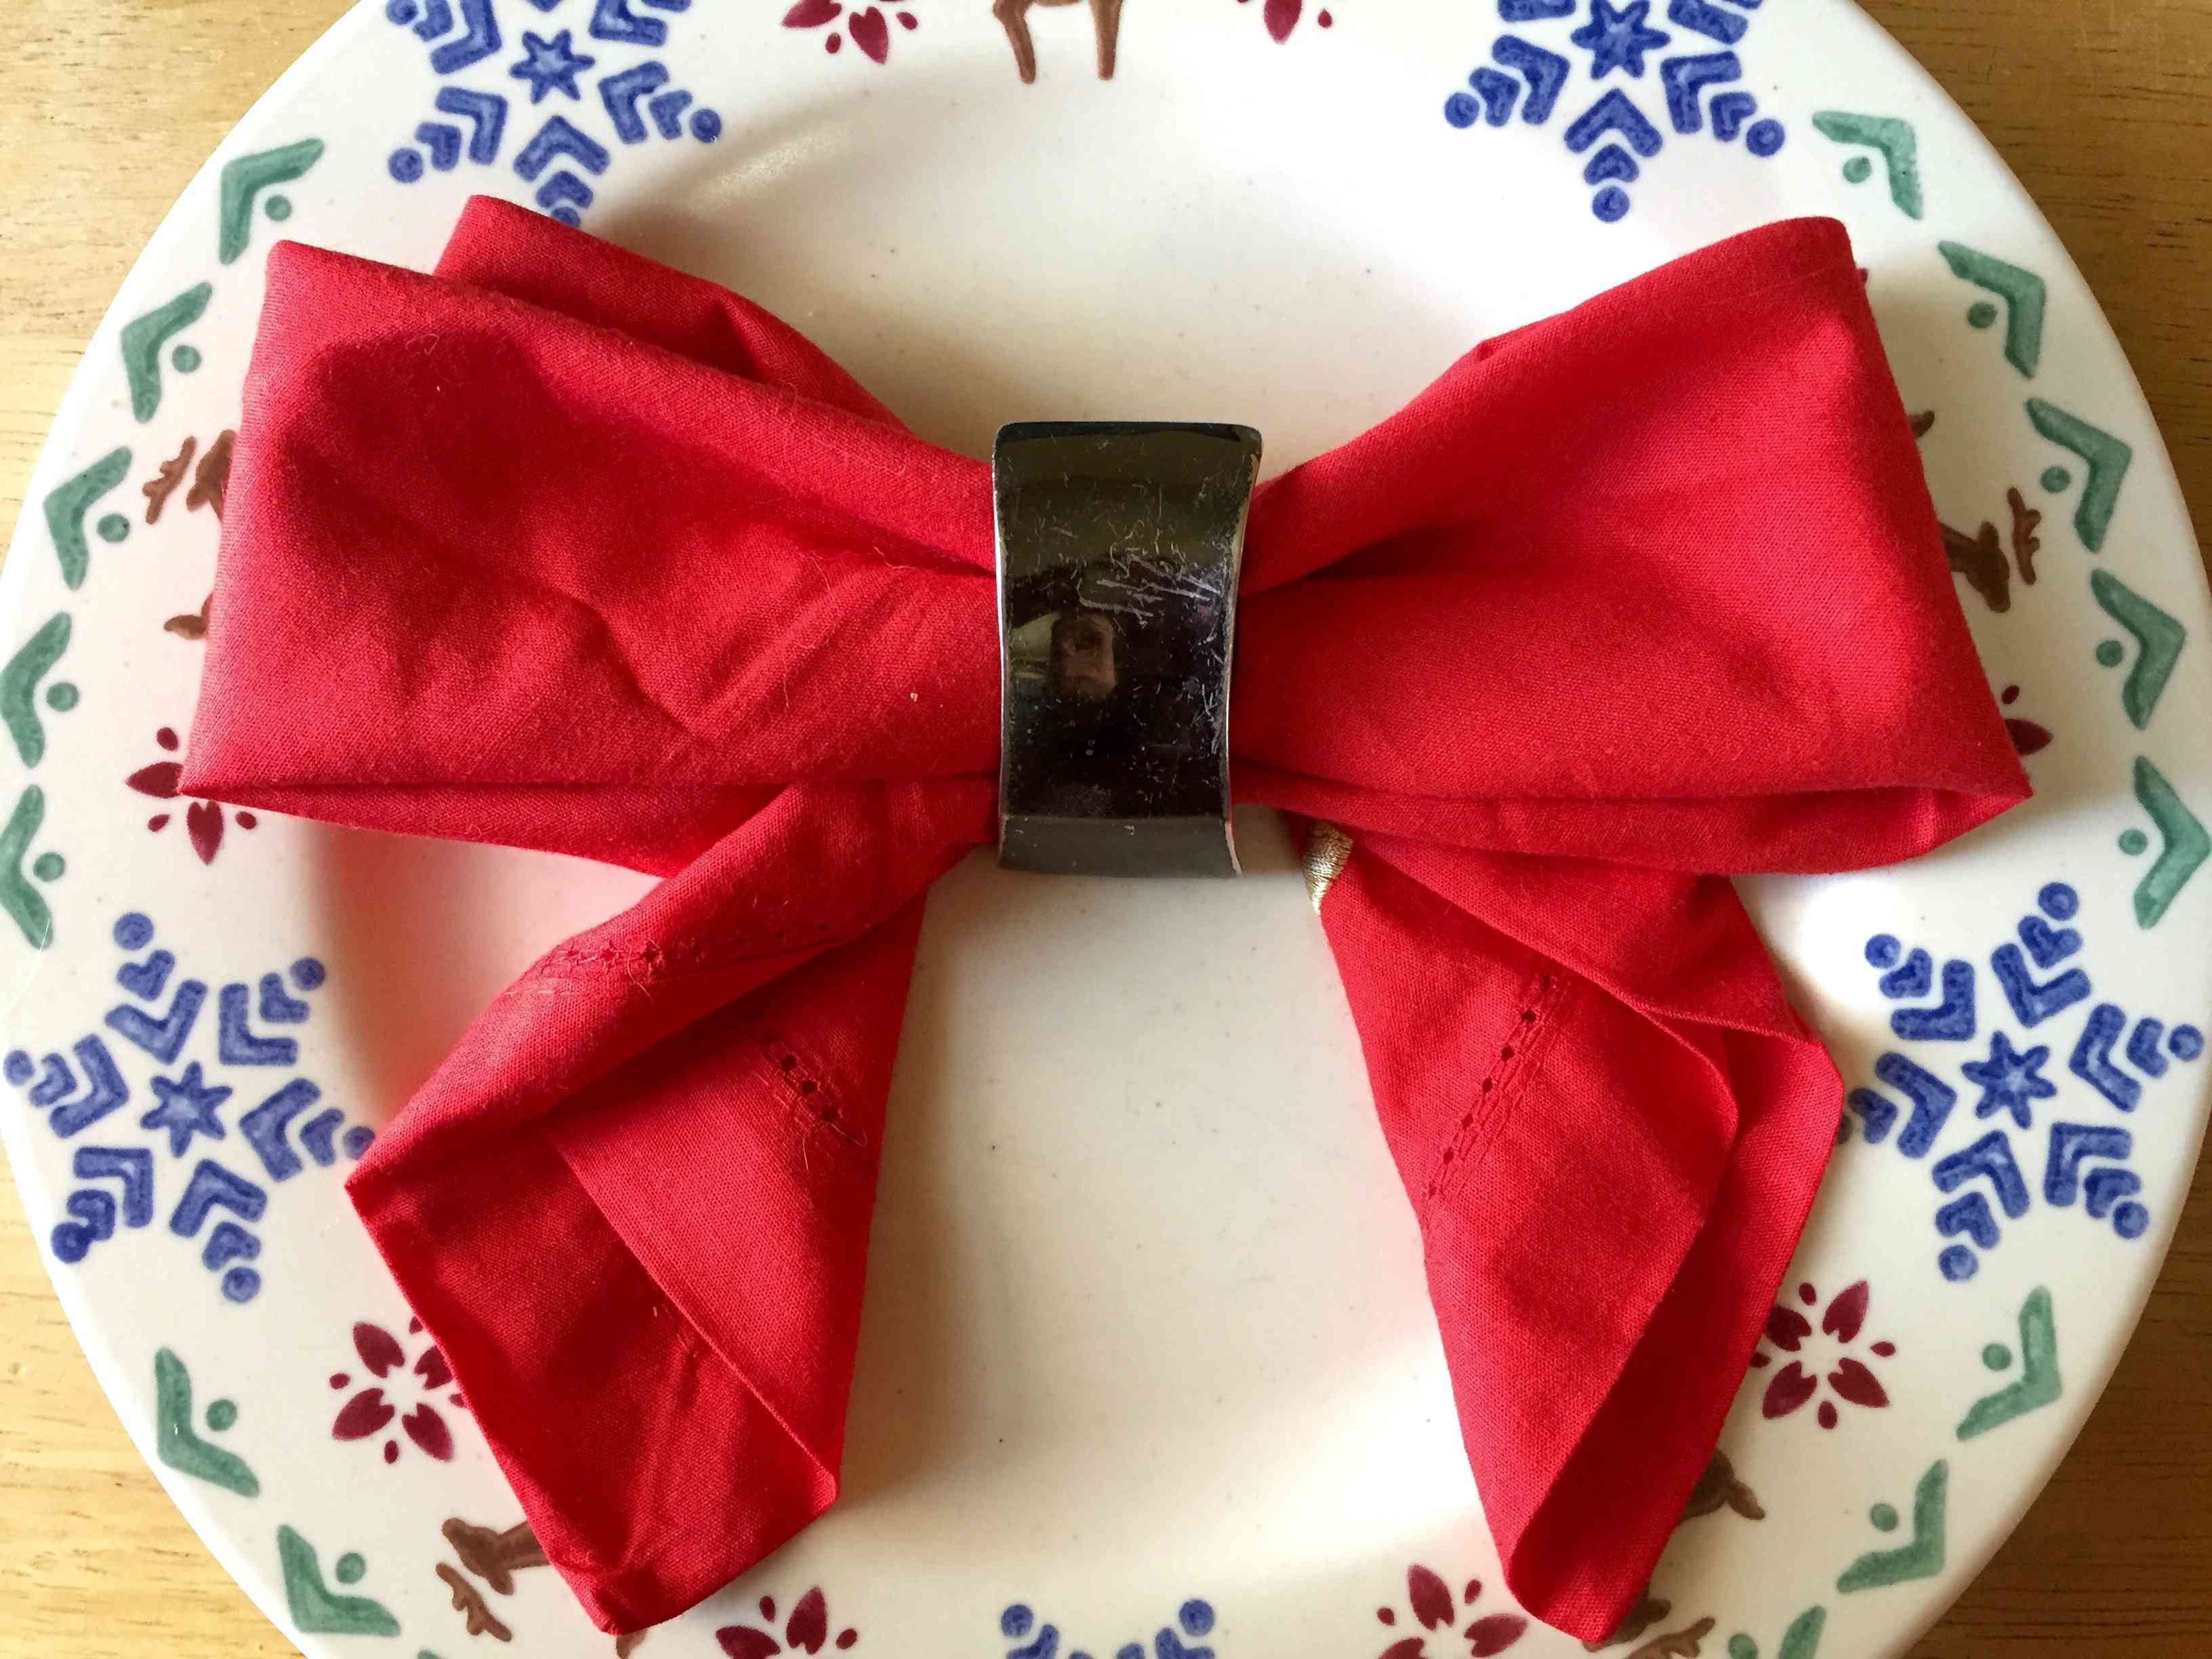 5 Easy Festive Napkin Folds For The Holidays